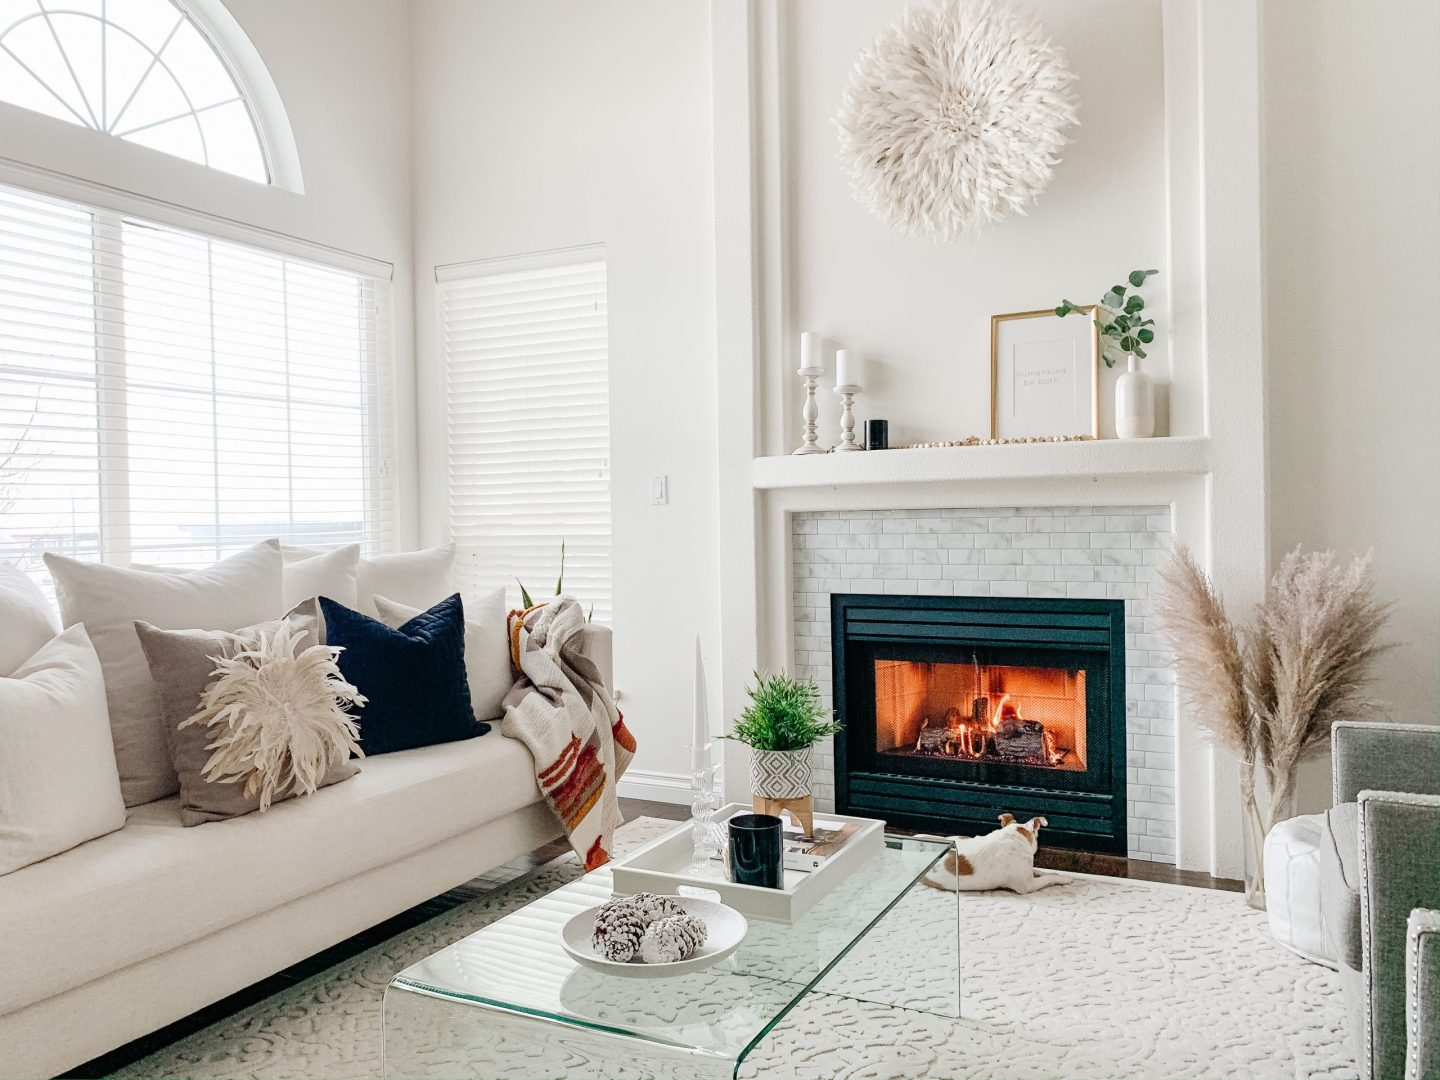 Creating a Cozy Winter Home